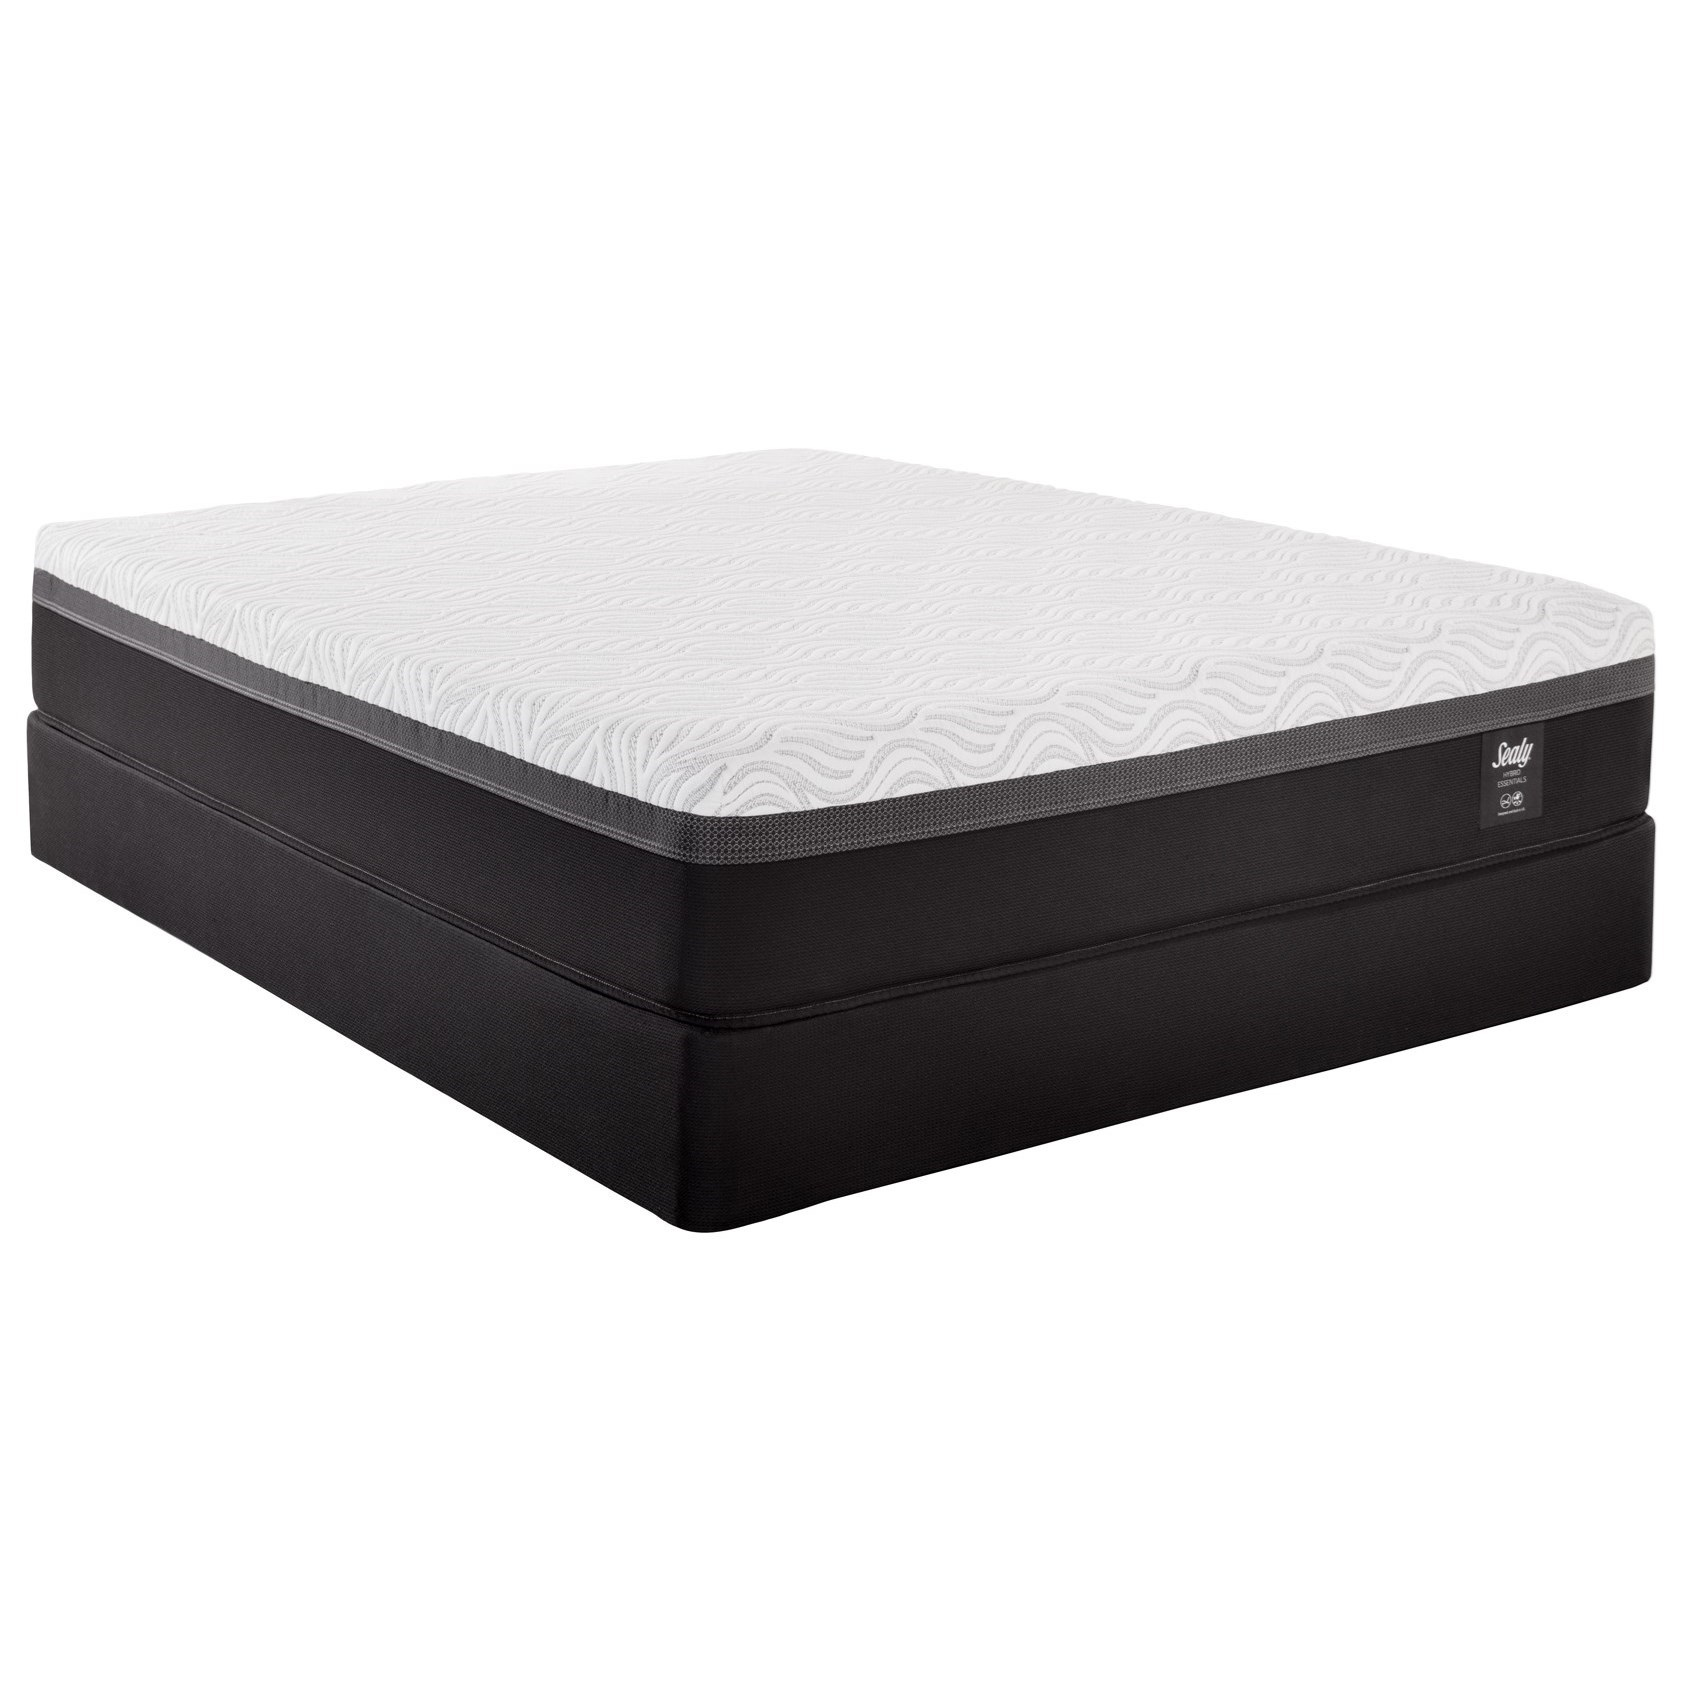 "Queen Essentials Hybrid Mattress and 5"" Low Profile StableSupport Foundation"